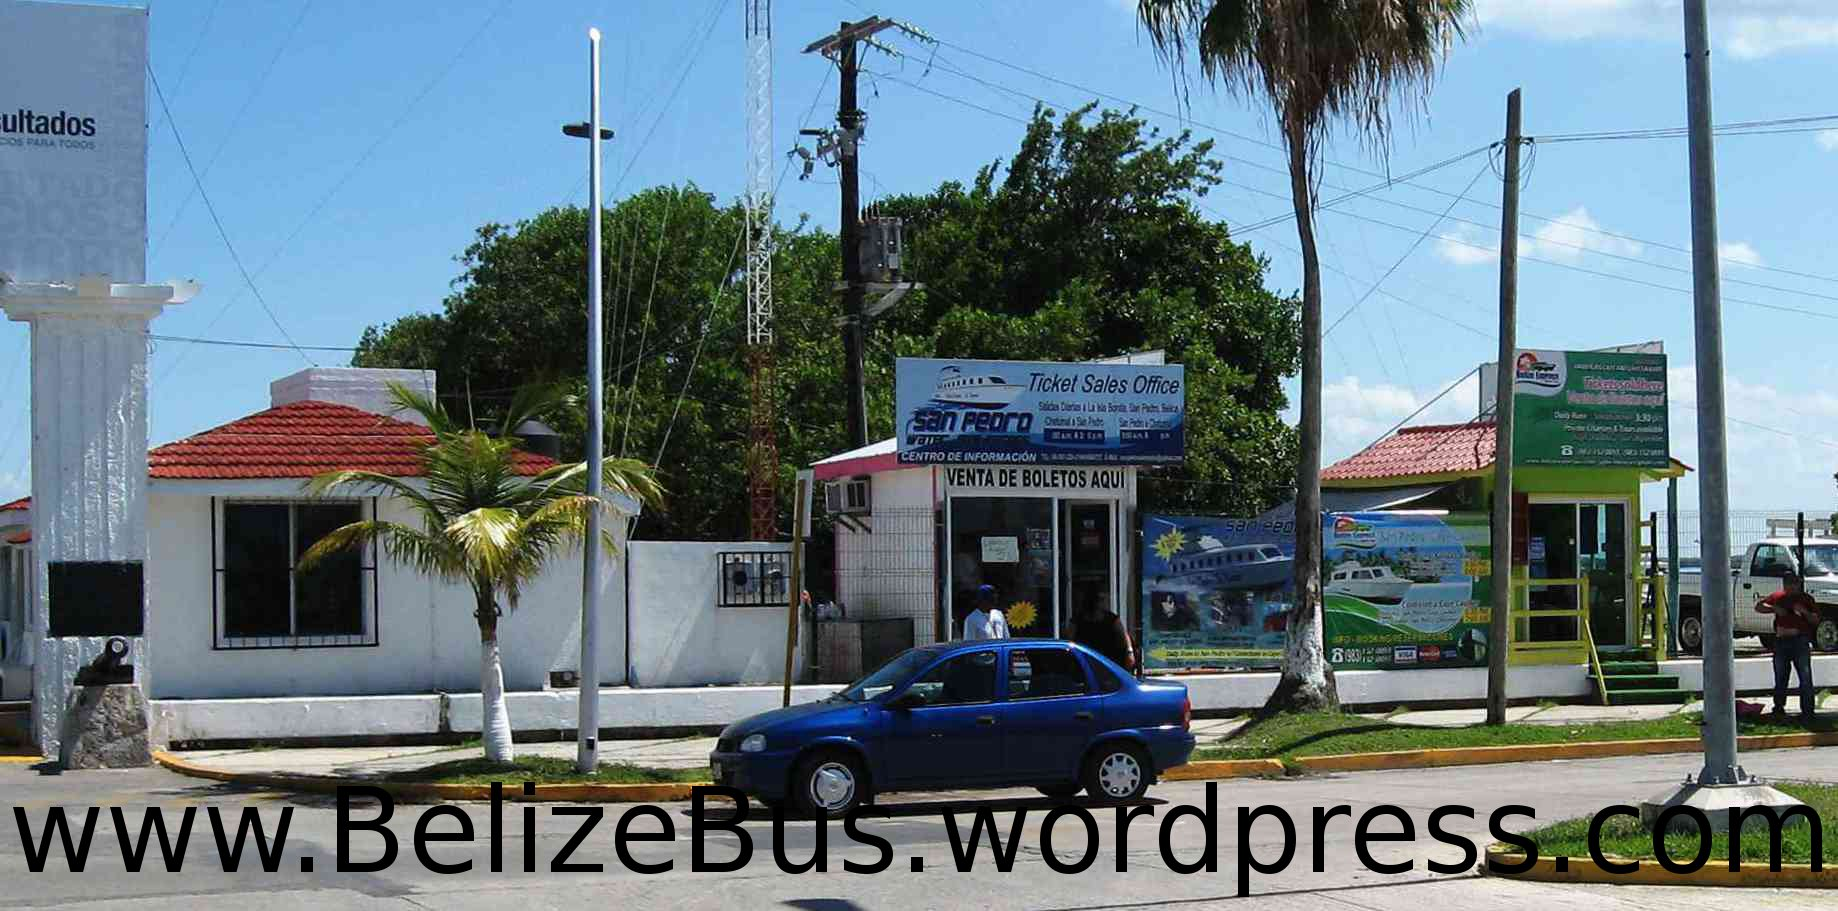 Renting A Car In Mexico And Driving To Belize